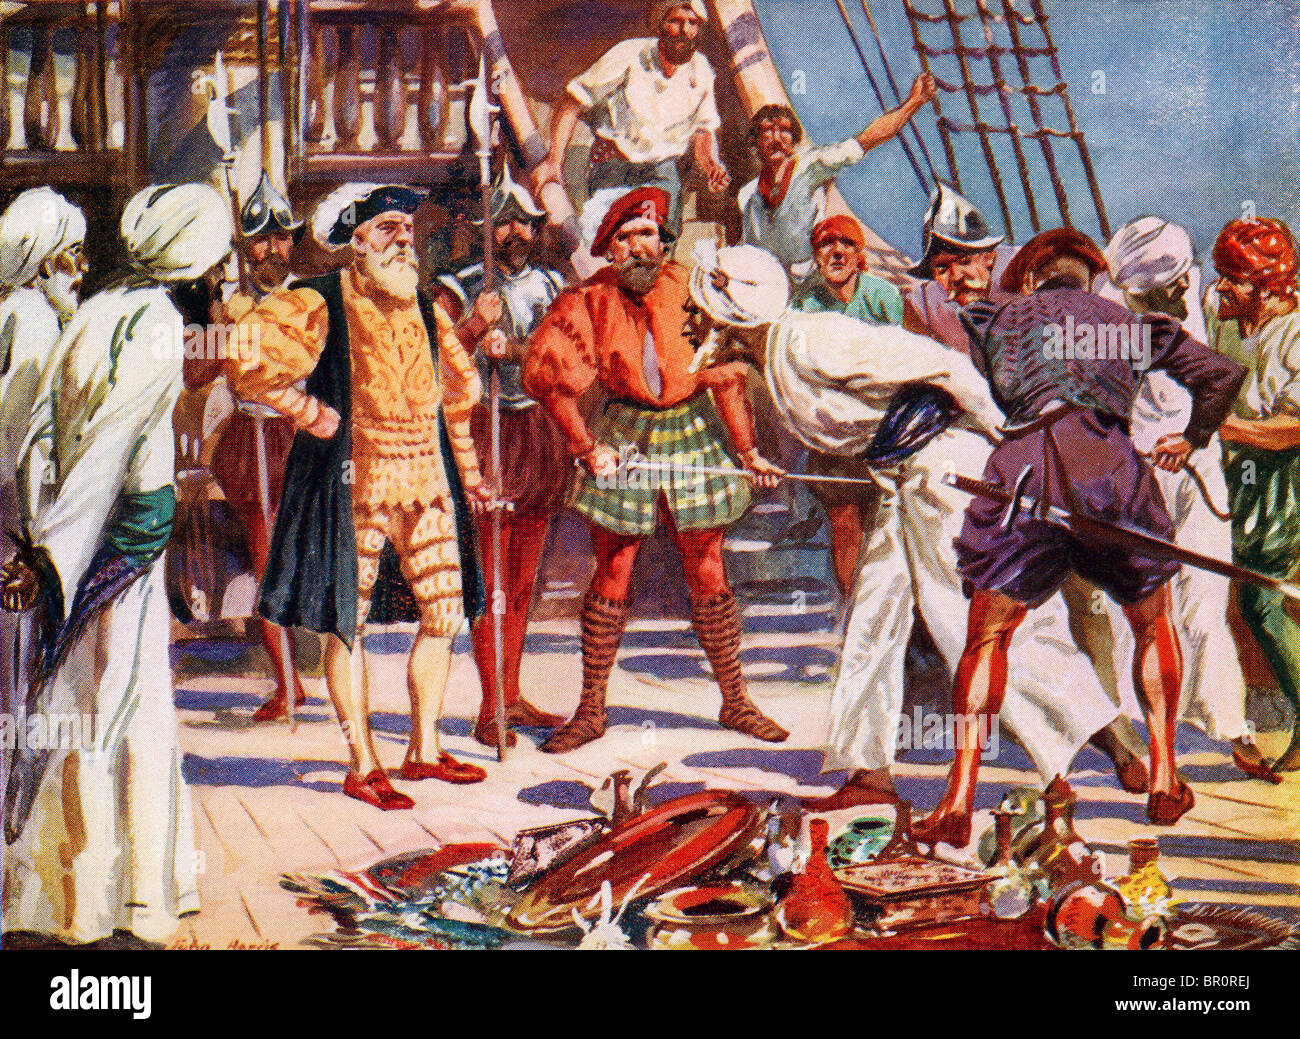 The Merchants of Calicut, India, held as hostages by Vasco Da Gama during his voyage in 1498. - Stock Image